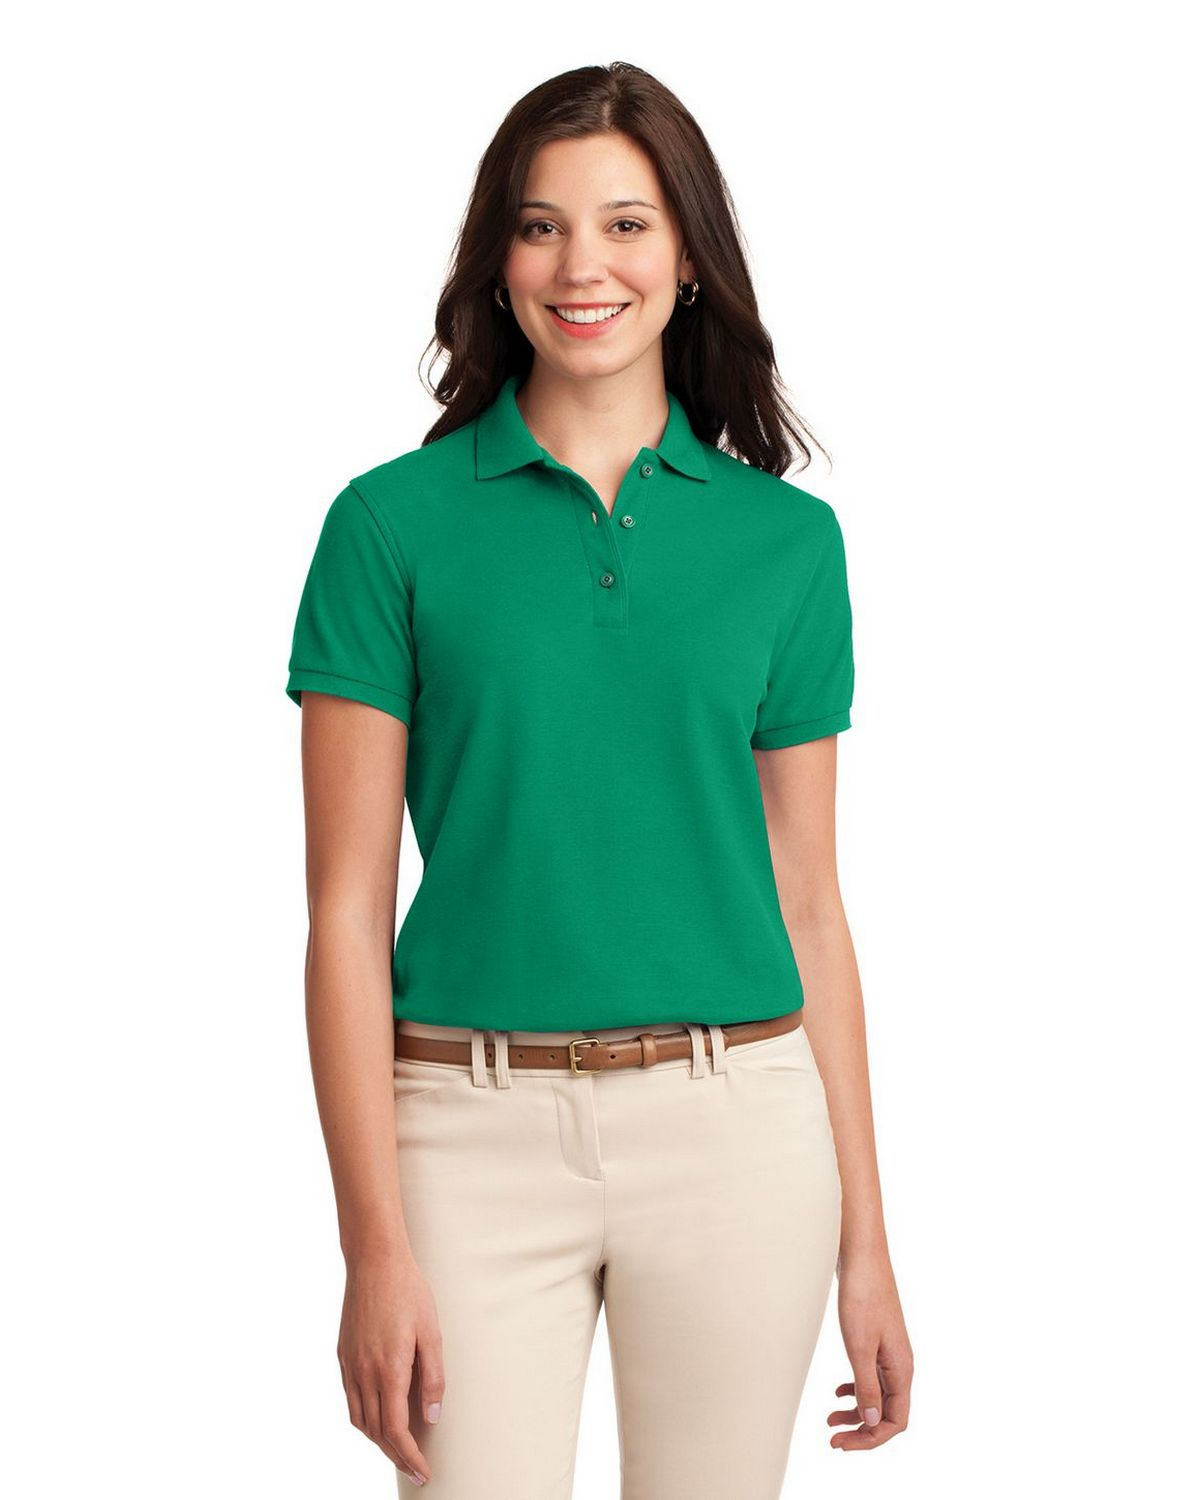 Port Authority L500 Women's Silk Touch Polo - Kelly Green - XS #silk